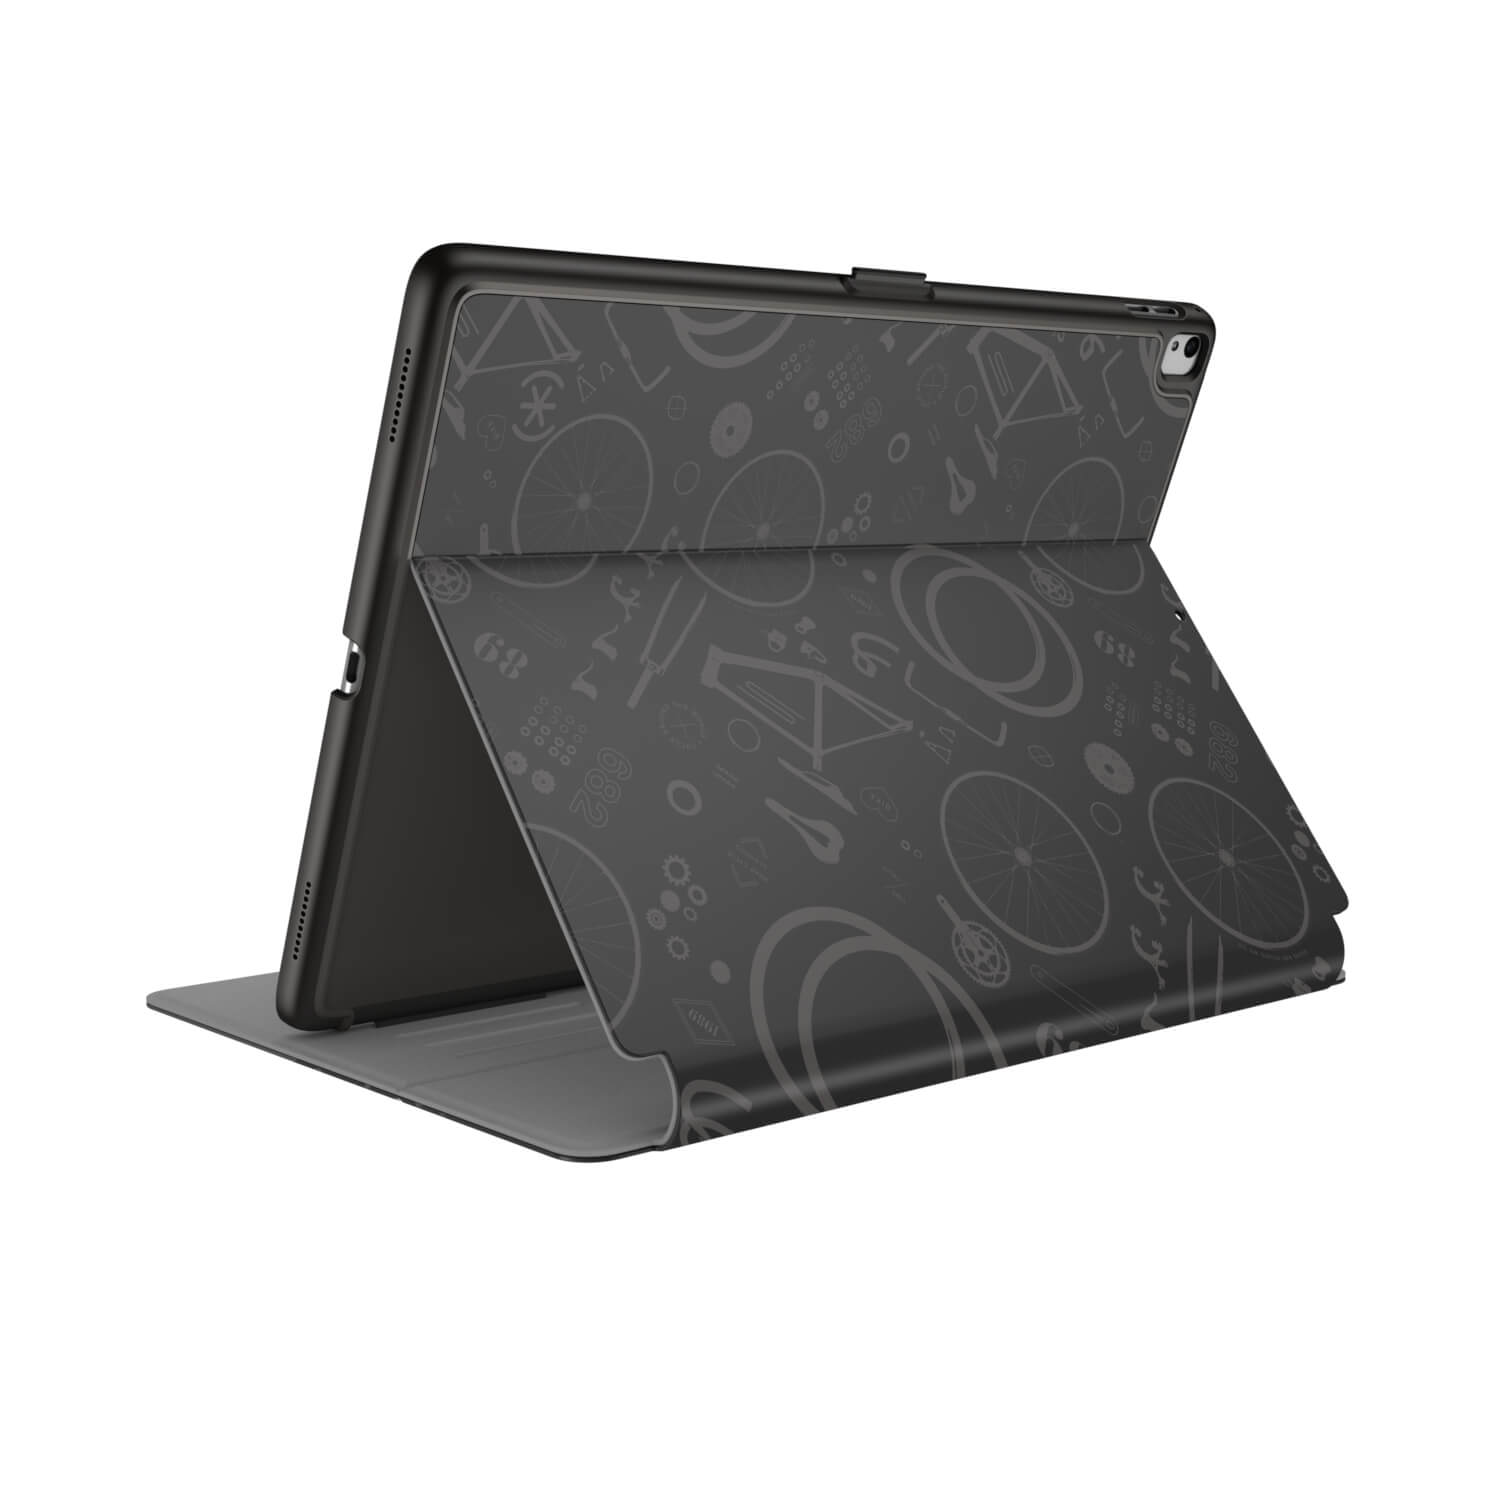 Compare retail prices of Speck Balance FOLIO PRINT 10.5 inch iPad Pro Cases BikeParts Black/Ash Grey to get the best deal online